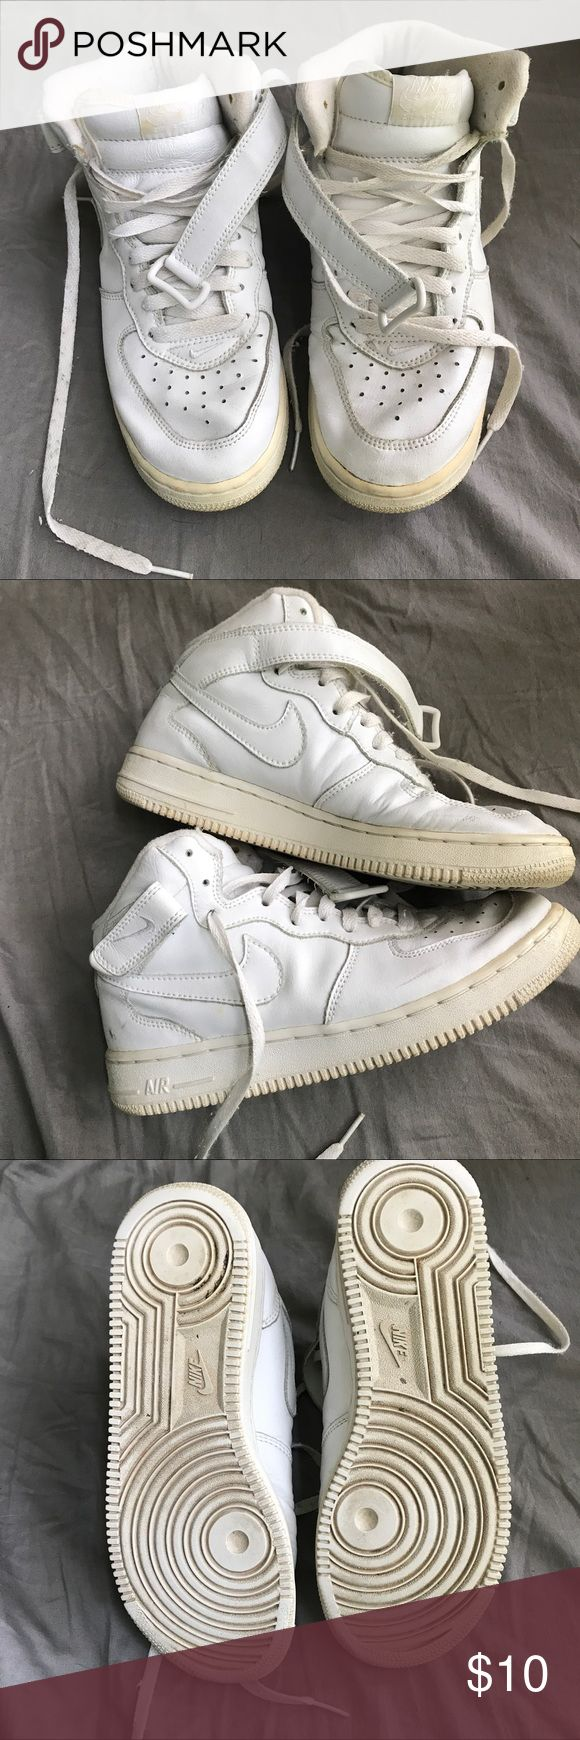 Nike Air Force 1 Mid Tops Boys 6Y. Can fit women's 7.5. Worn a lot but the soles still don't look too bad. Priced low due to beat up condition but great if you like that kind of look. Nike Shoes Sneakers